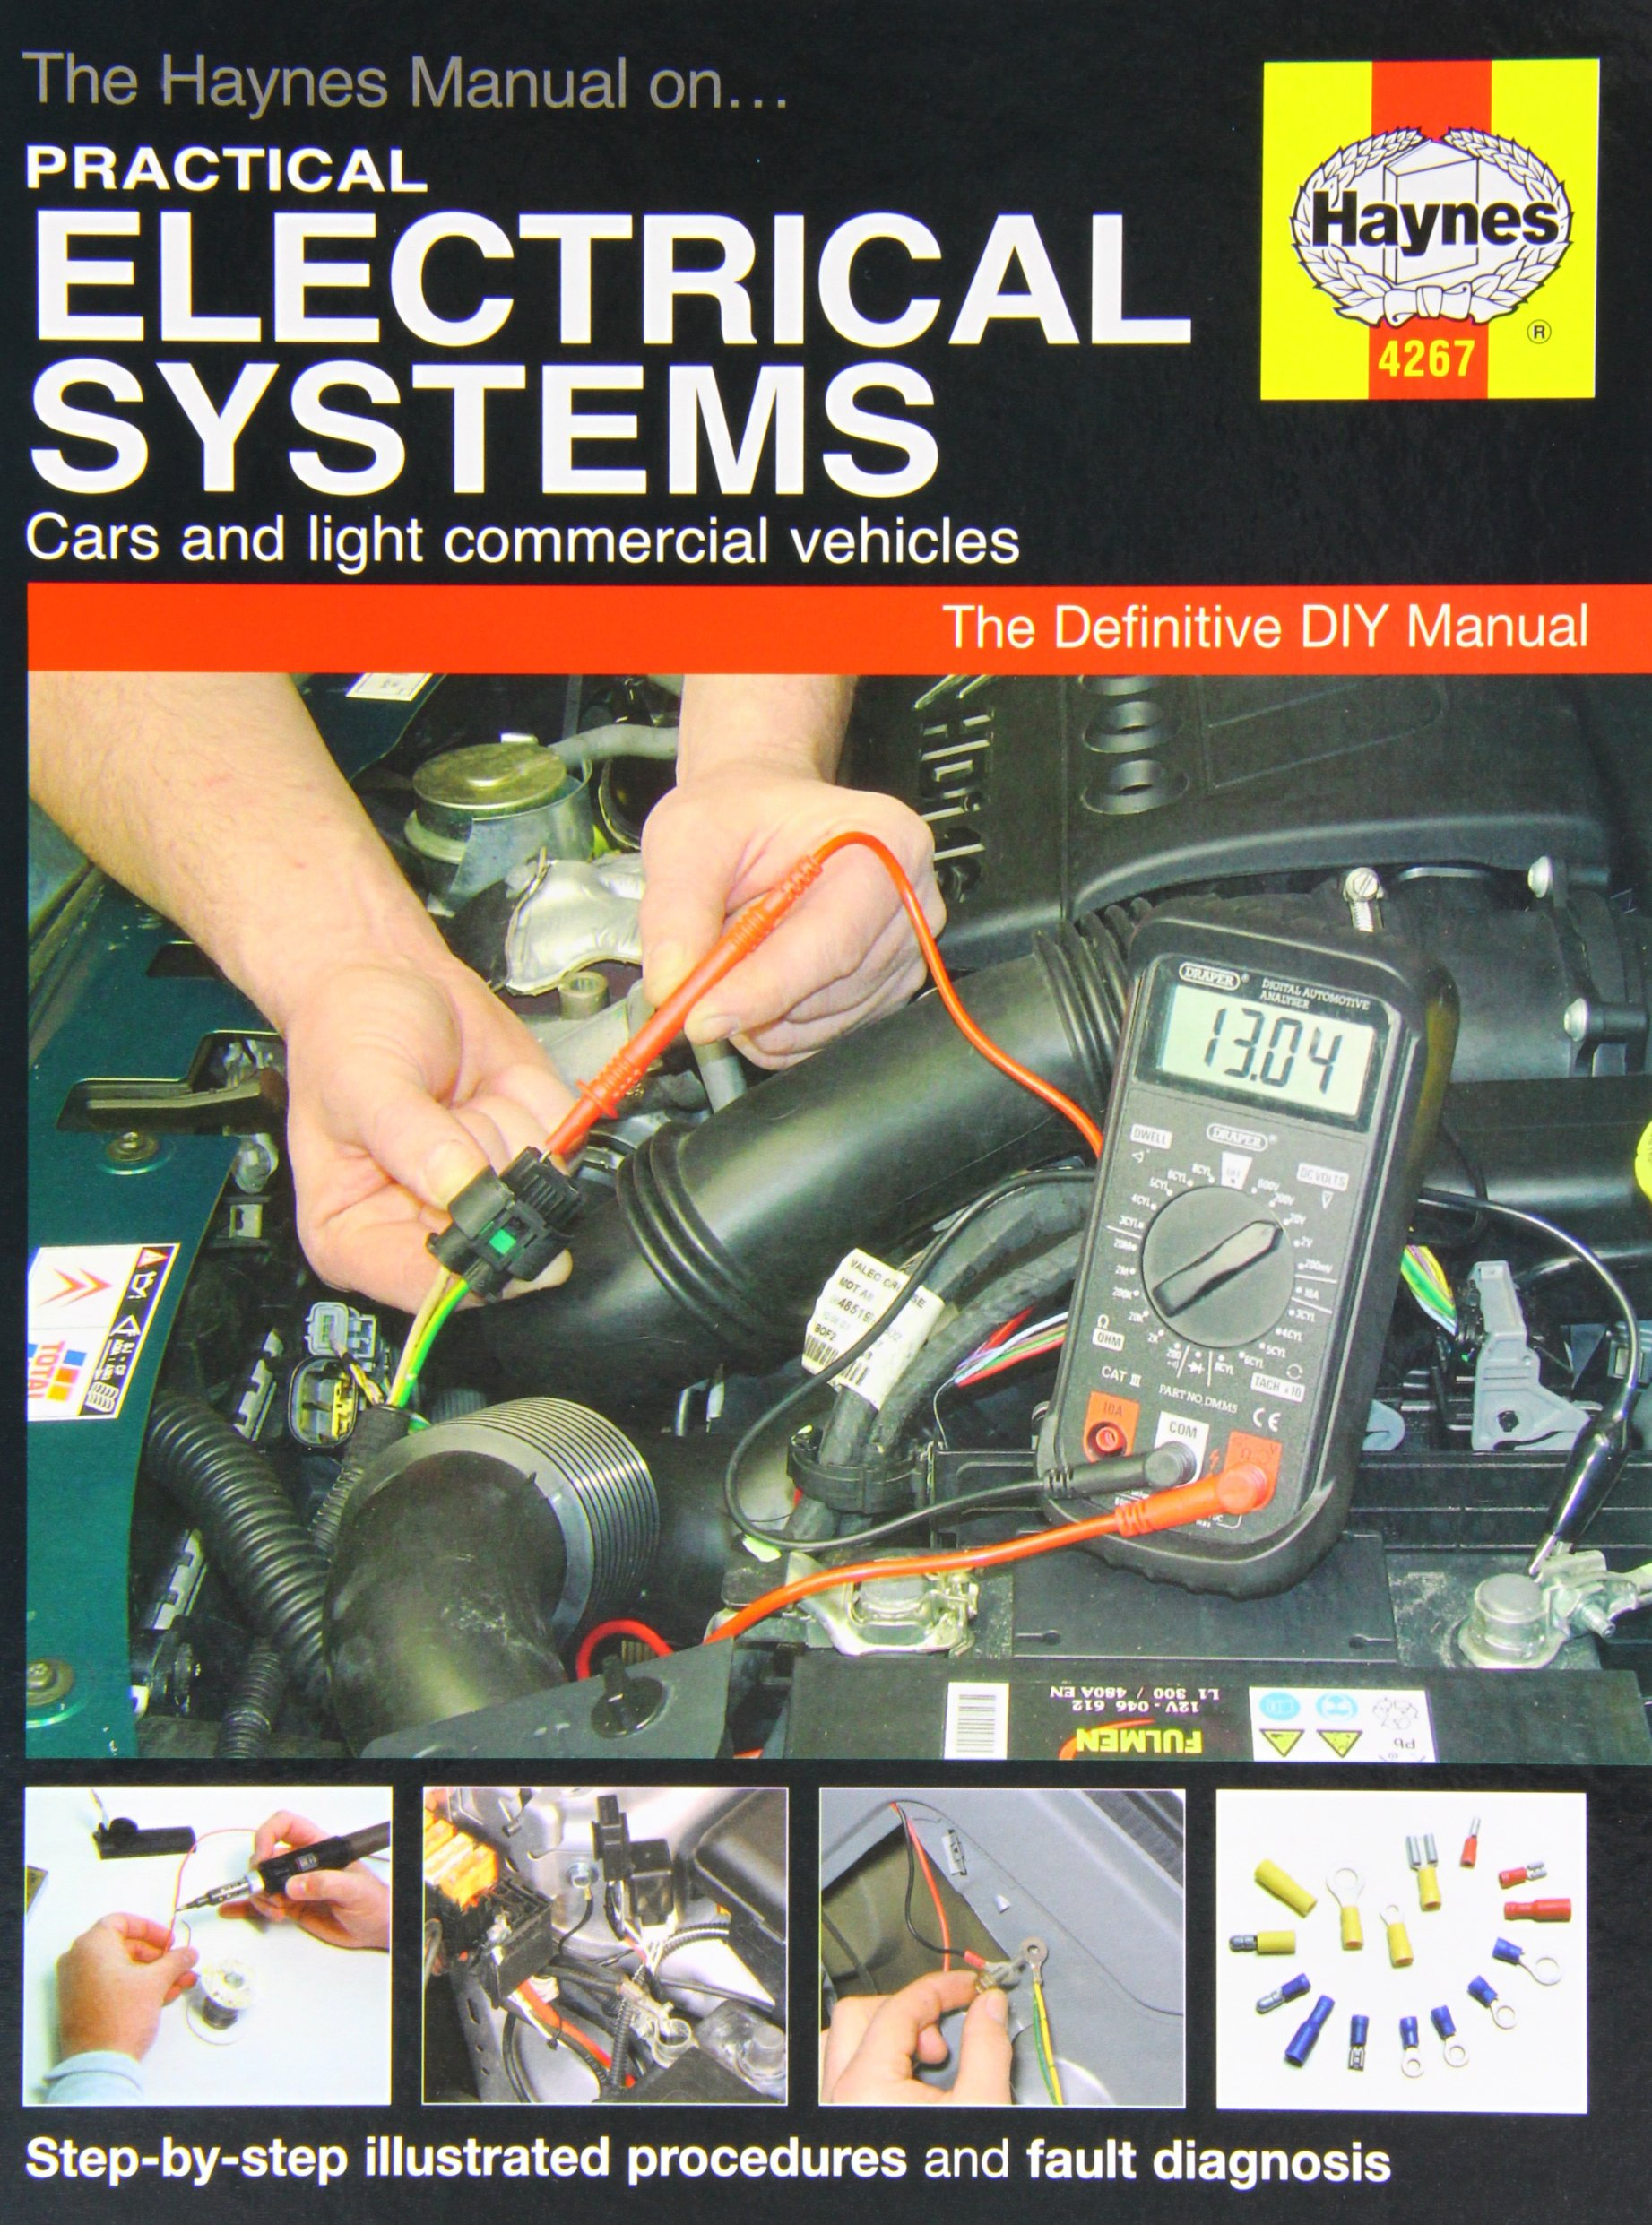 The Haynes Manual on Practical Electrical Systems: Amazon.co.uk: Martynn  Randall: 9781844252671: Books